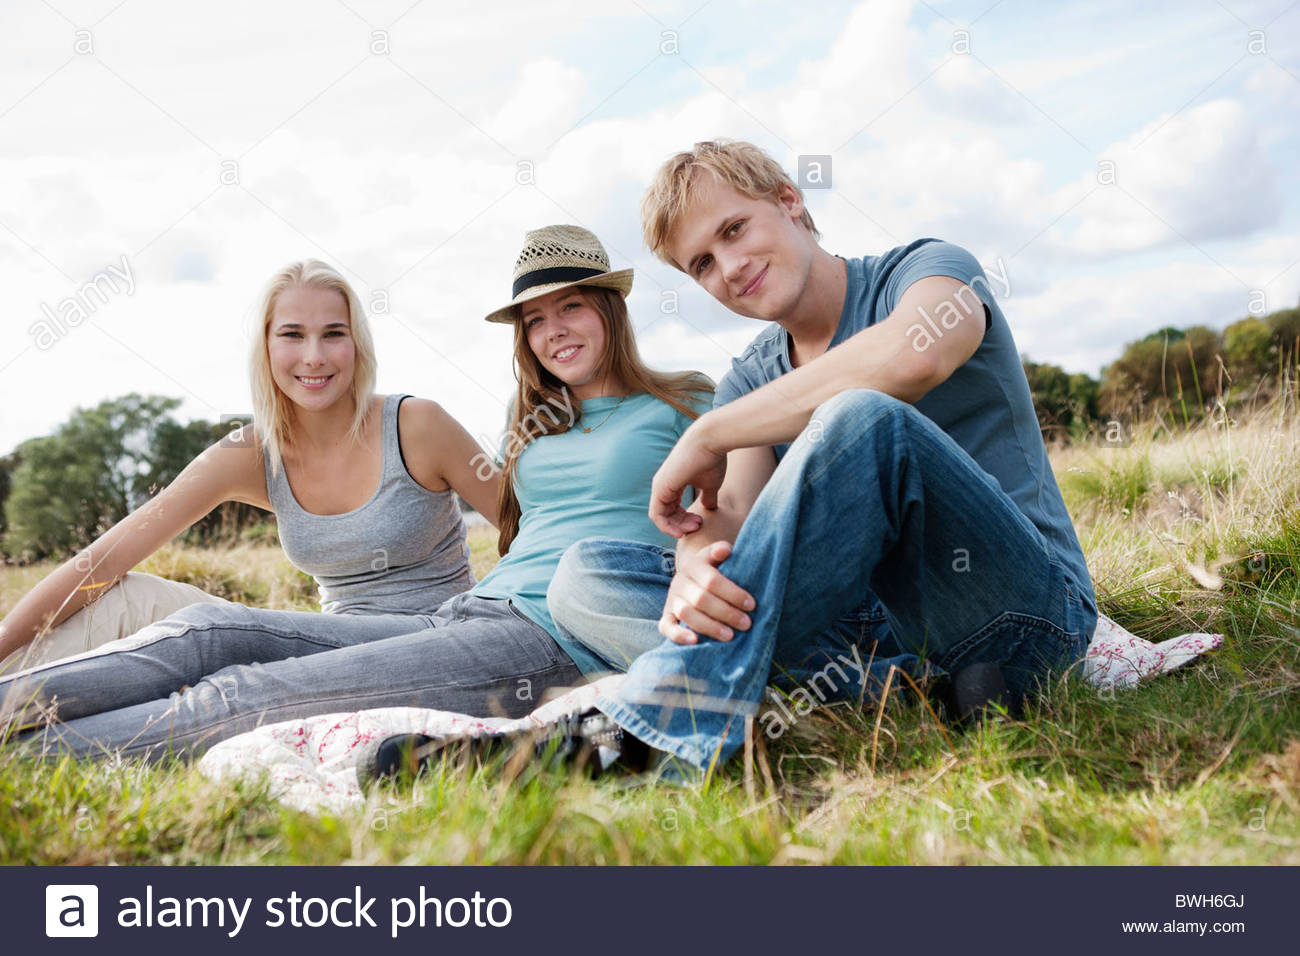 Three young persons sitting in grass - Stock Image